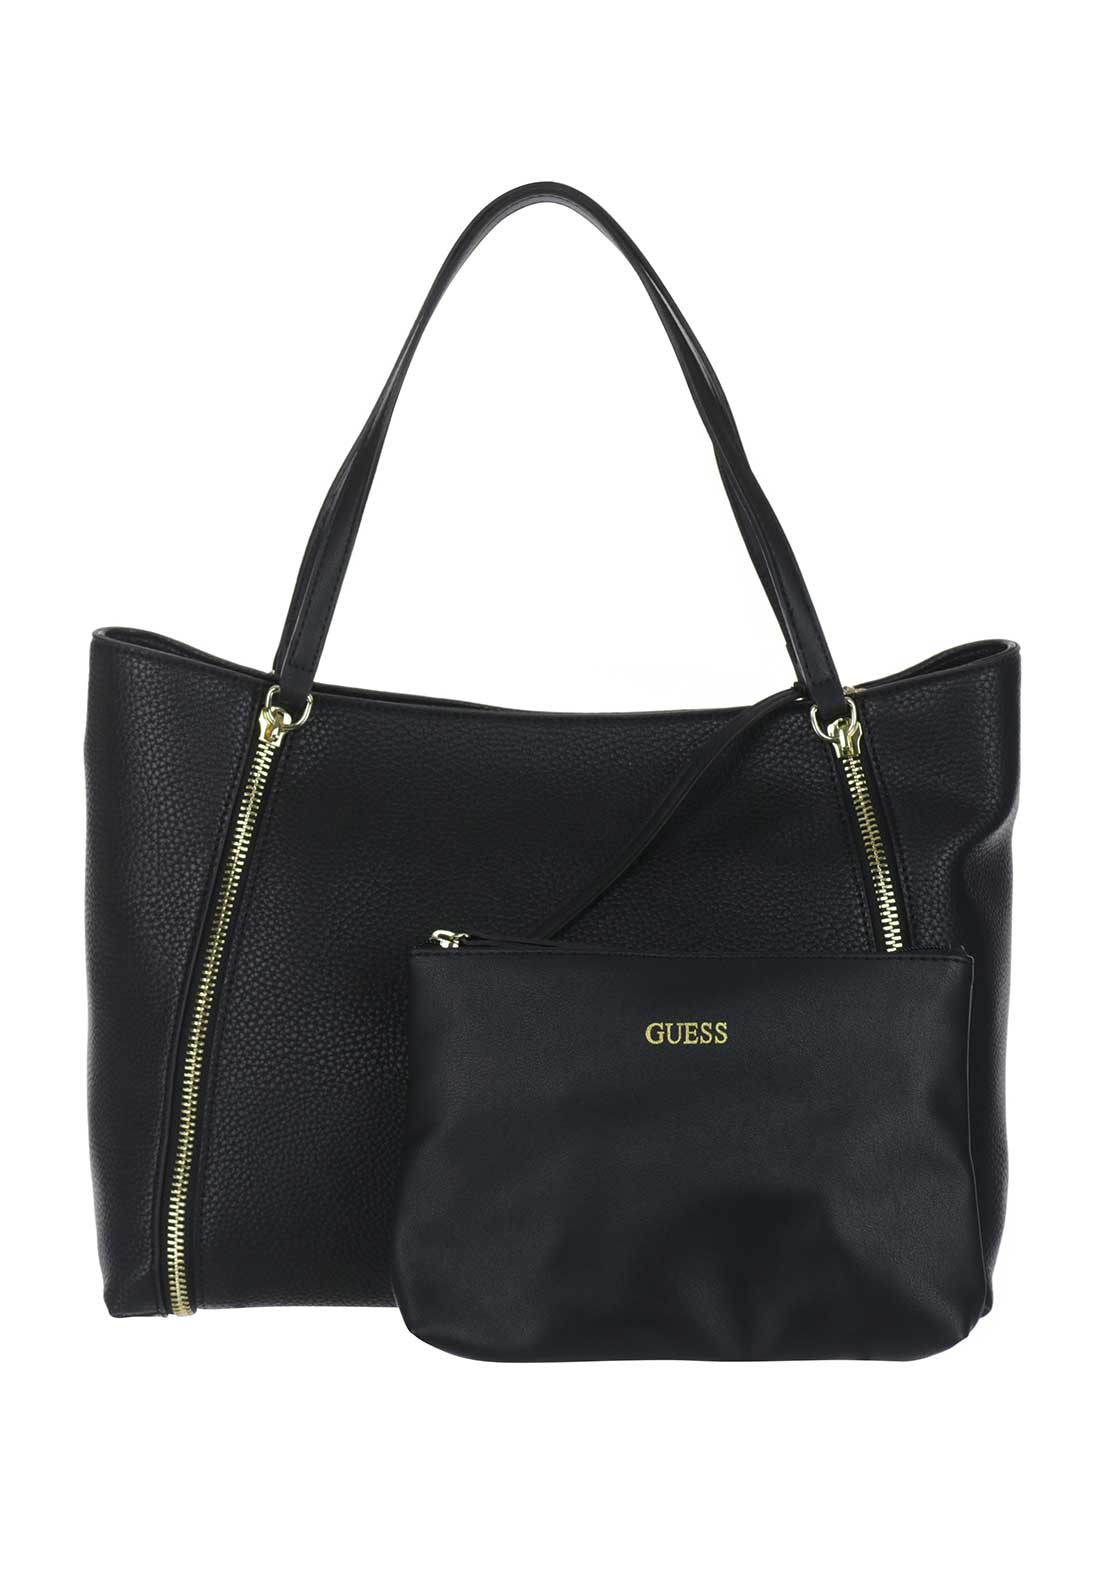 Guess Tote Bag, Black